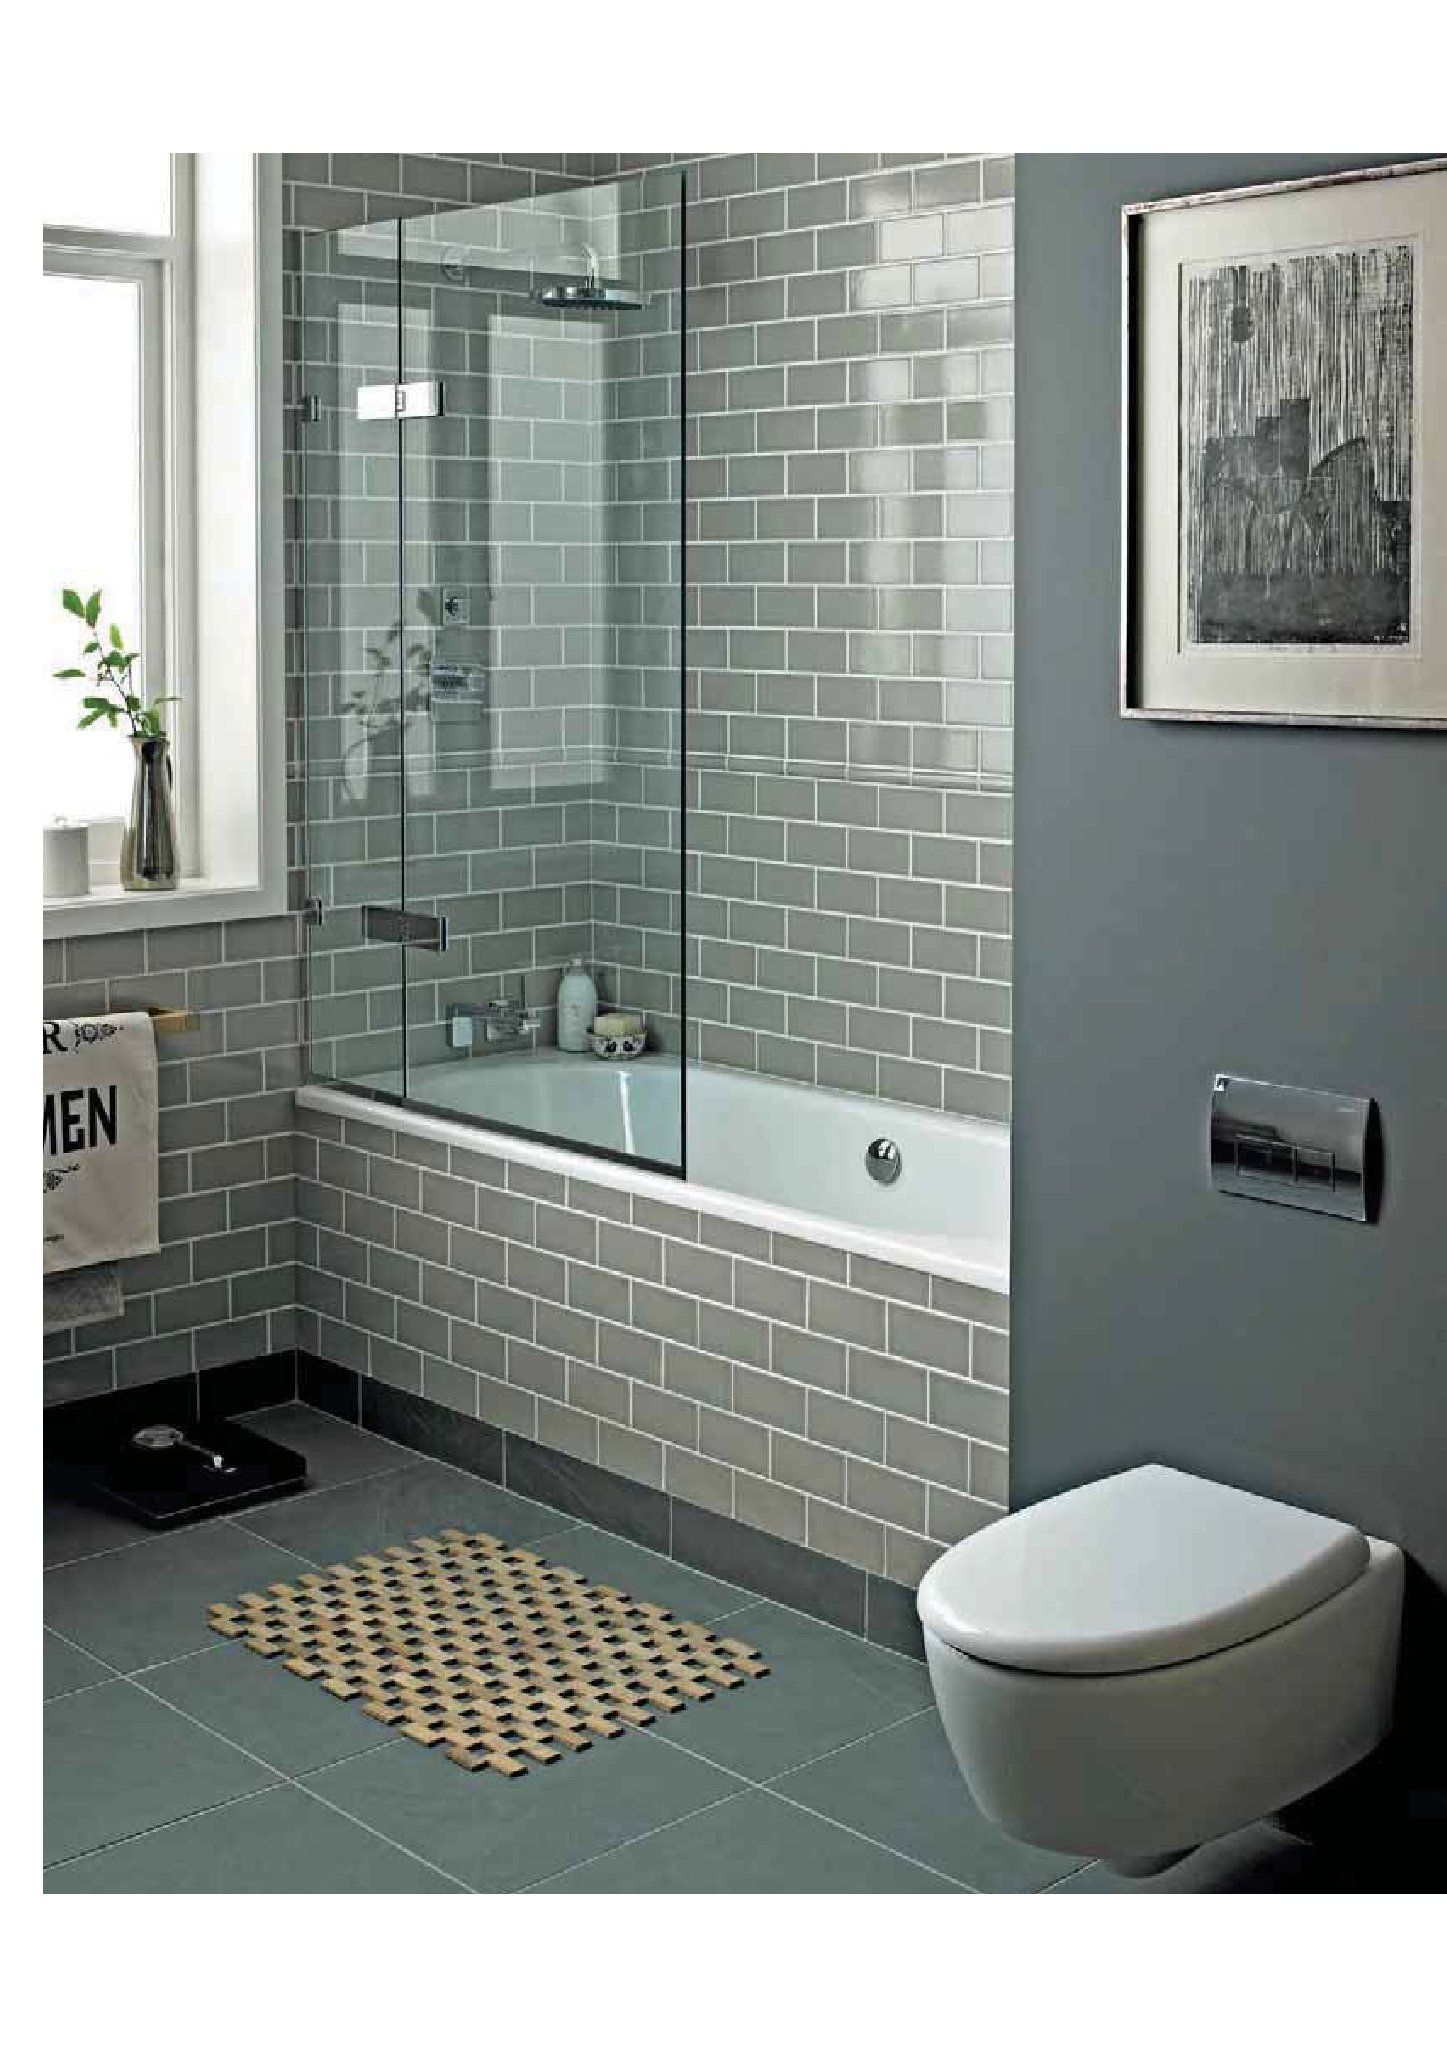 Superieur Smoke Glass Subway Tile. Shower Ideas BathroomBathtub IdeasBathroom DesignsGrey  Bathroom TilesBathroom Colors ...